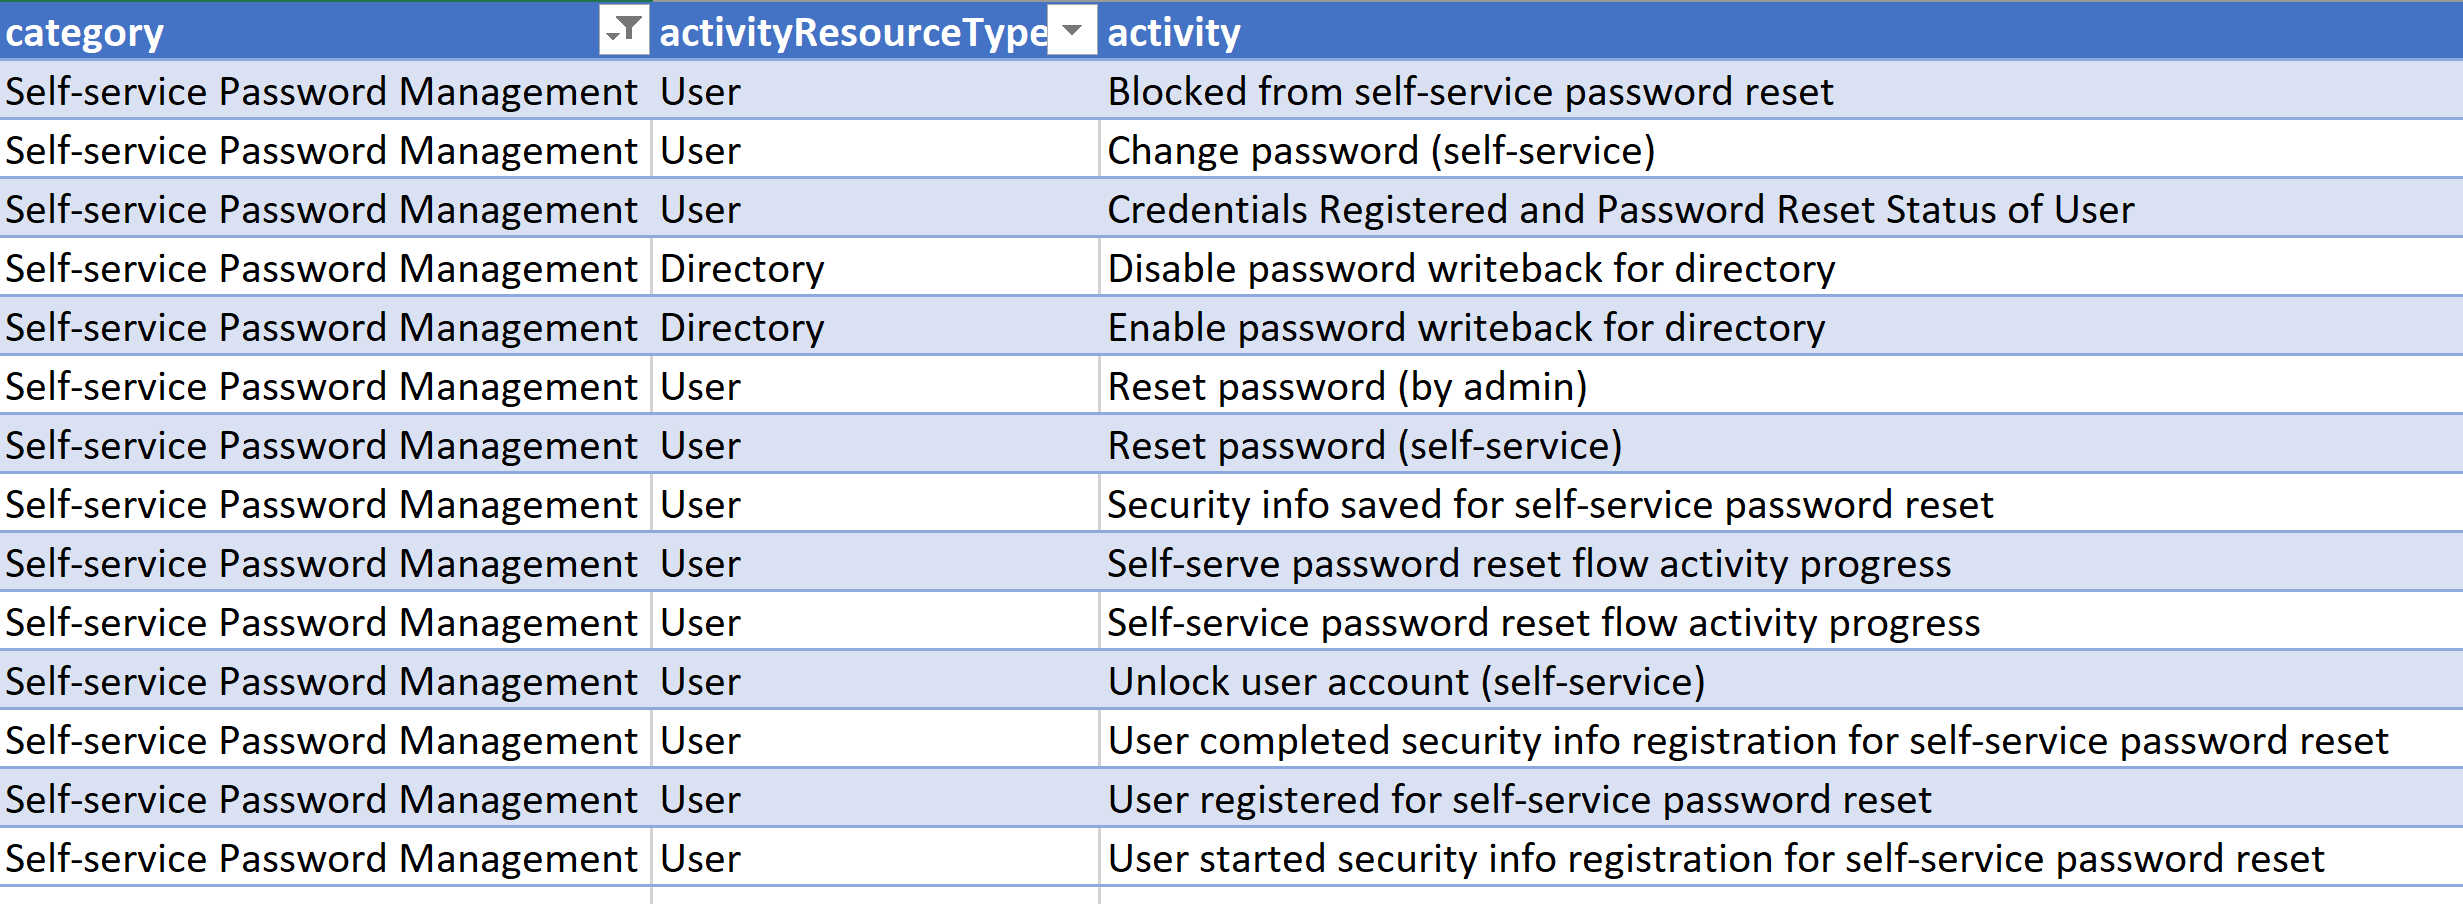 Tivoli Access Manager Force Password Change Identity And Access Management Archives Page 2 Of 12 Bespoke